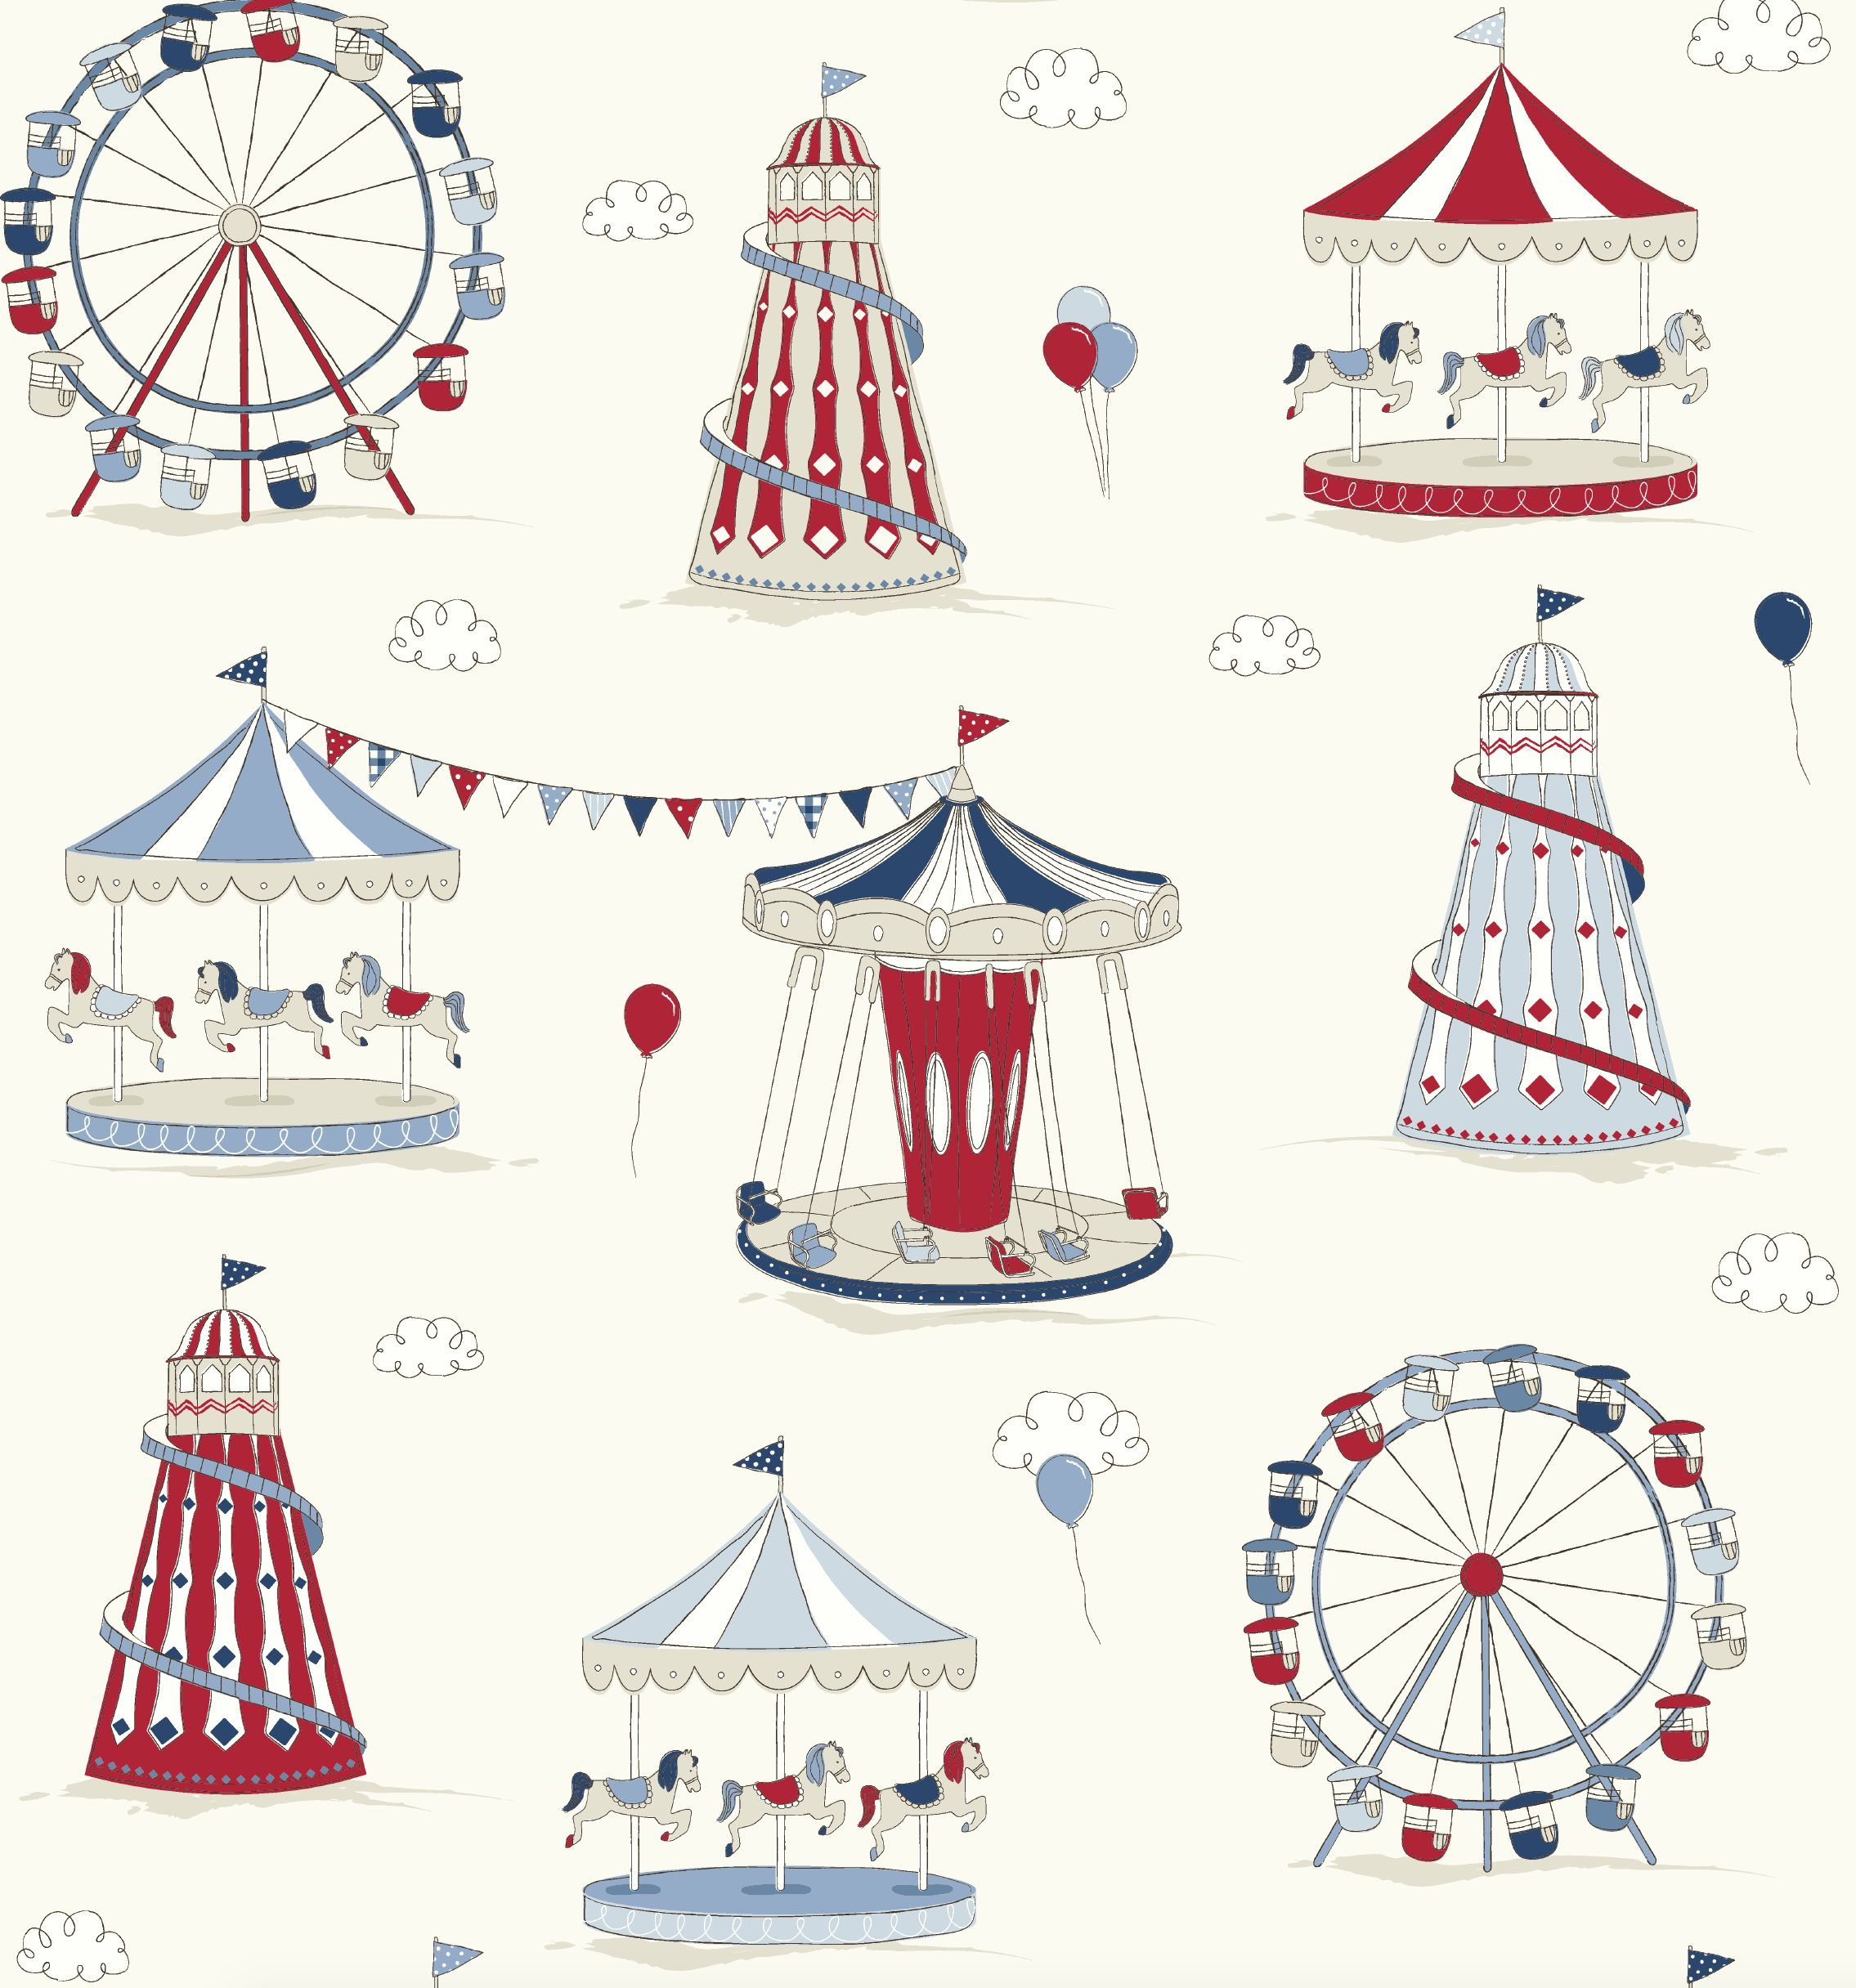 39 fun fair 39 novelty children 39 s fabric patterns for Kids novelty fabric